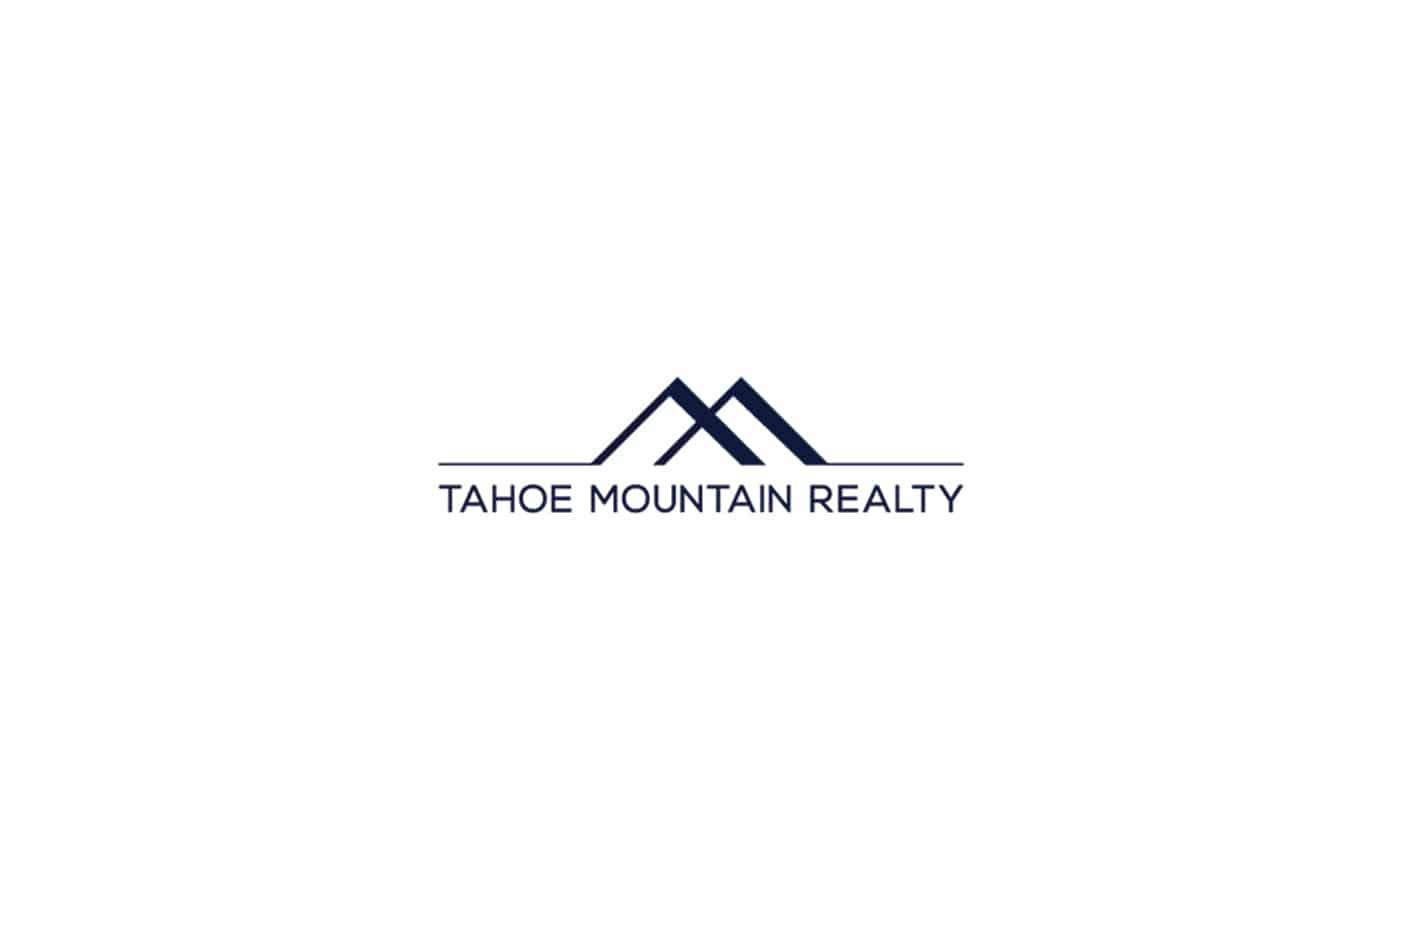 tahoe mountain logo